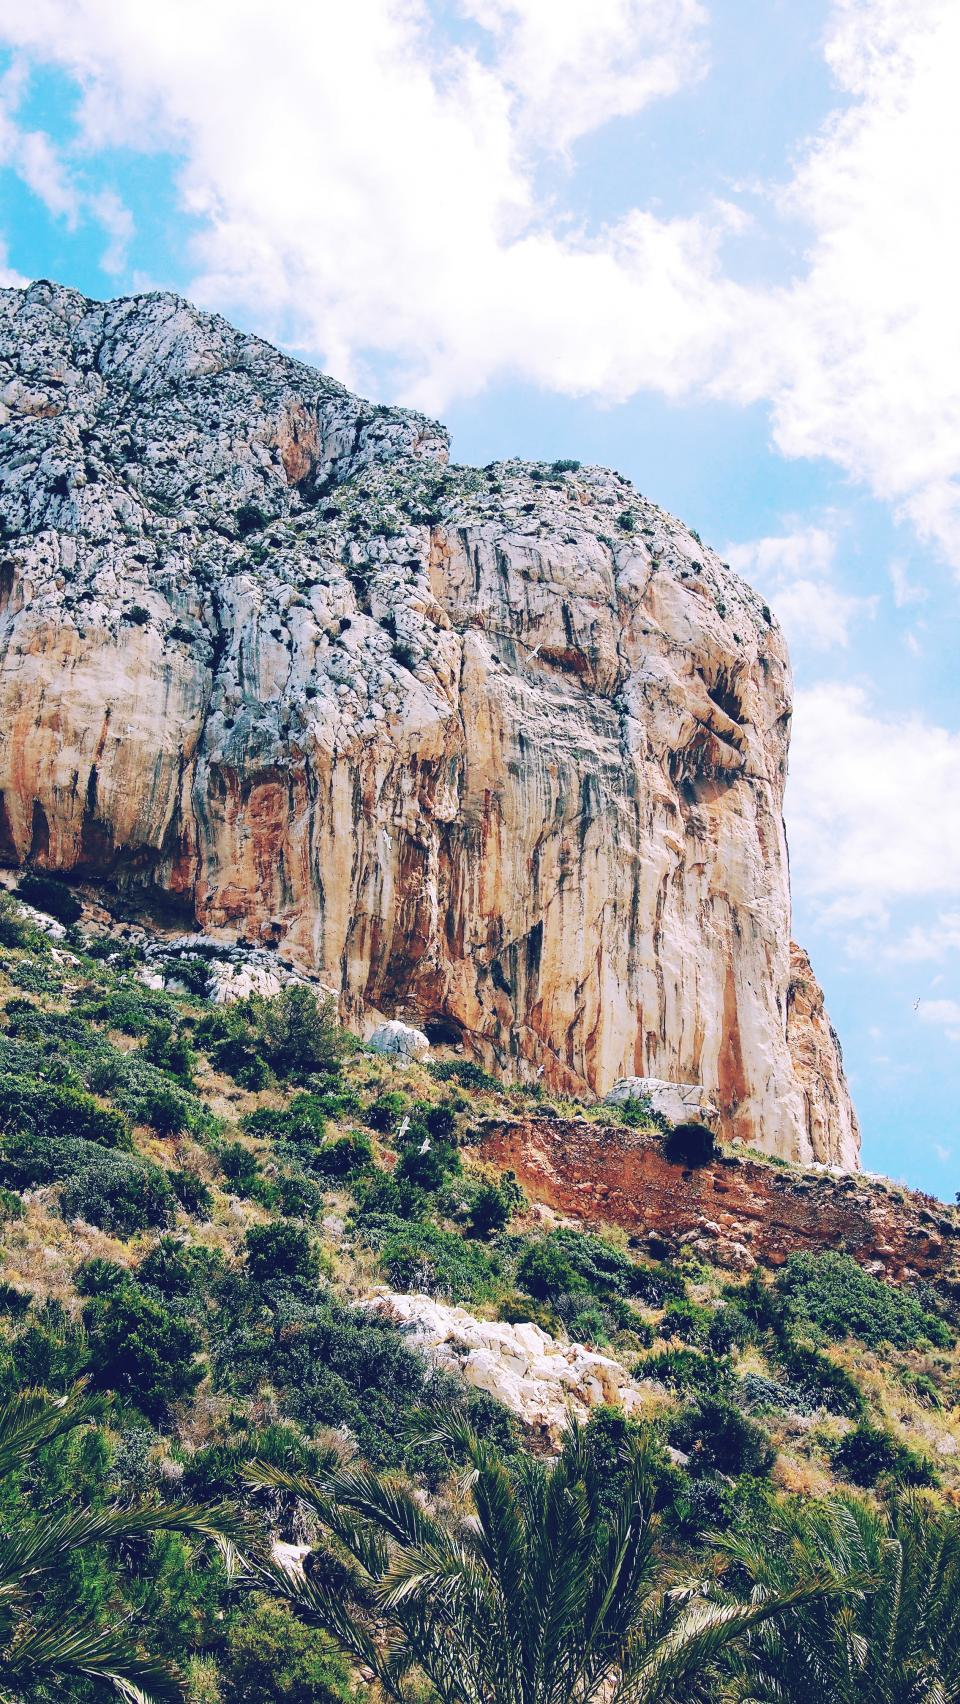 nature trees green mountain rock formation clouds sky travel adventure